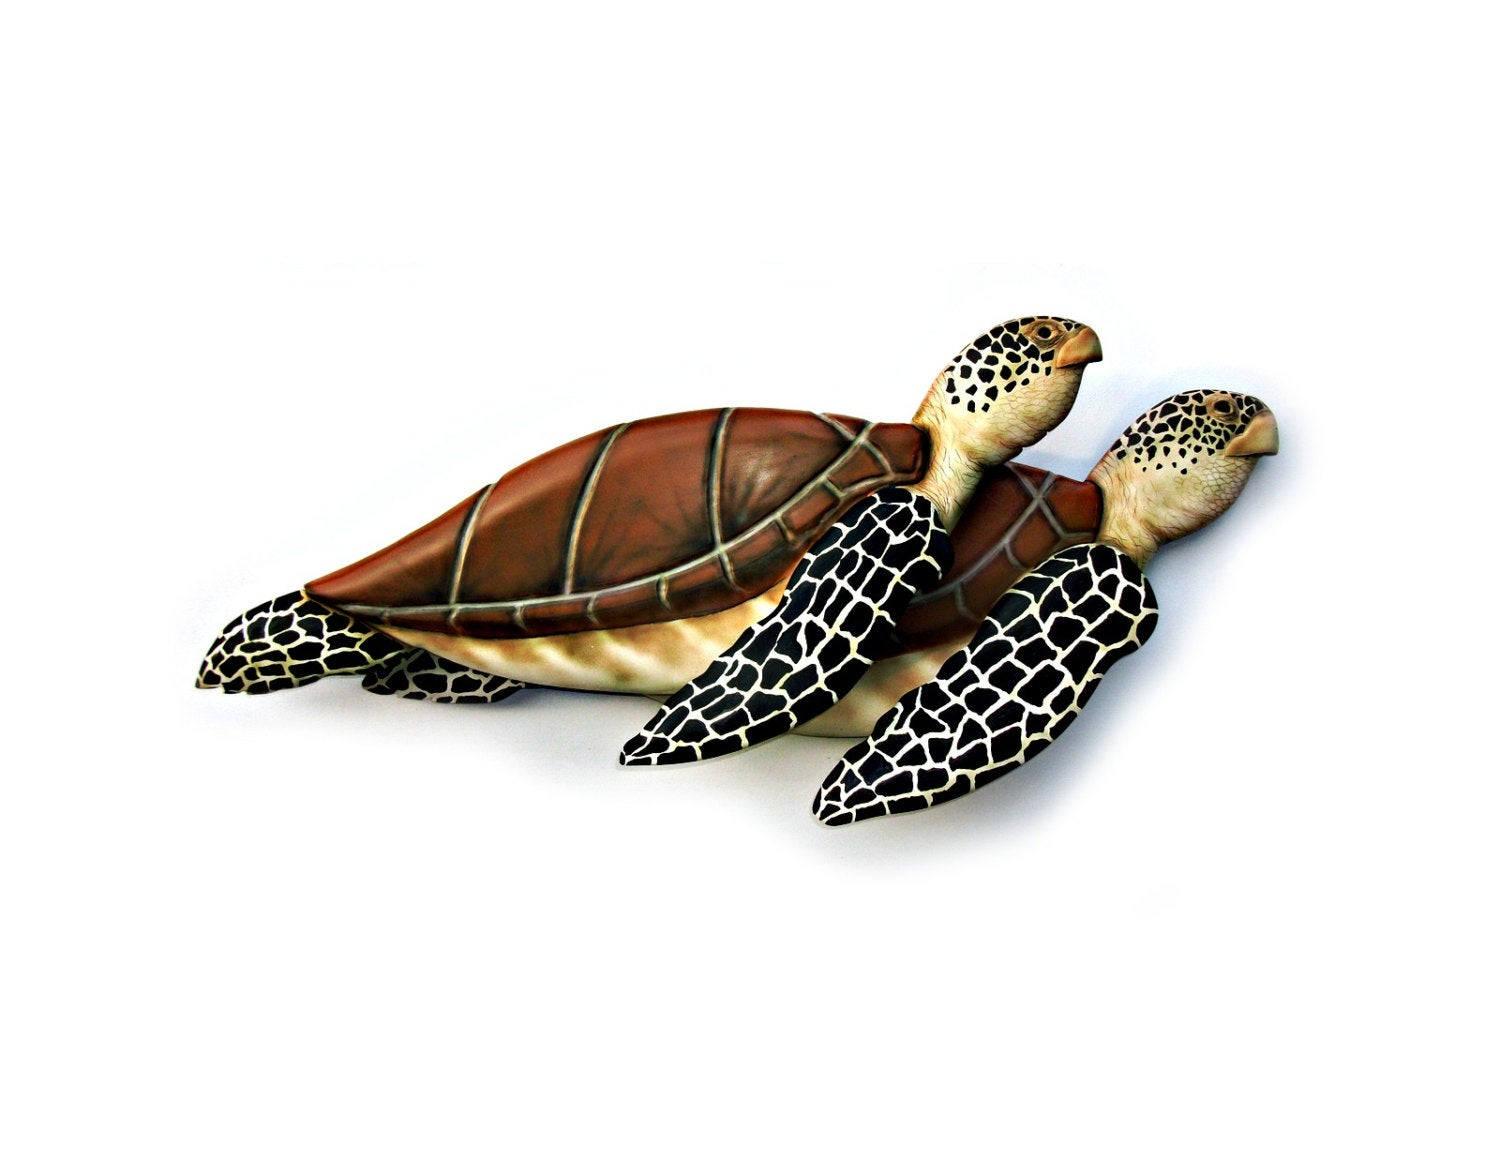 Rhys Turtle Decor Wall Decor Pertaining To Most Current Sea Turtle Wall Art – Pmpresssecretariat (View 10 of 20)